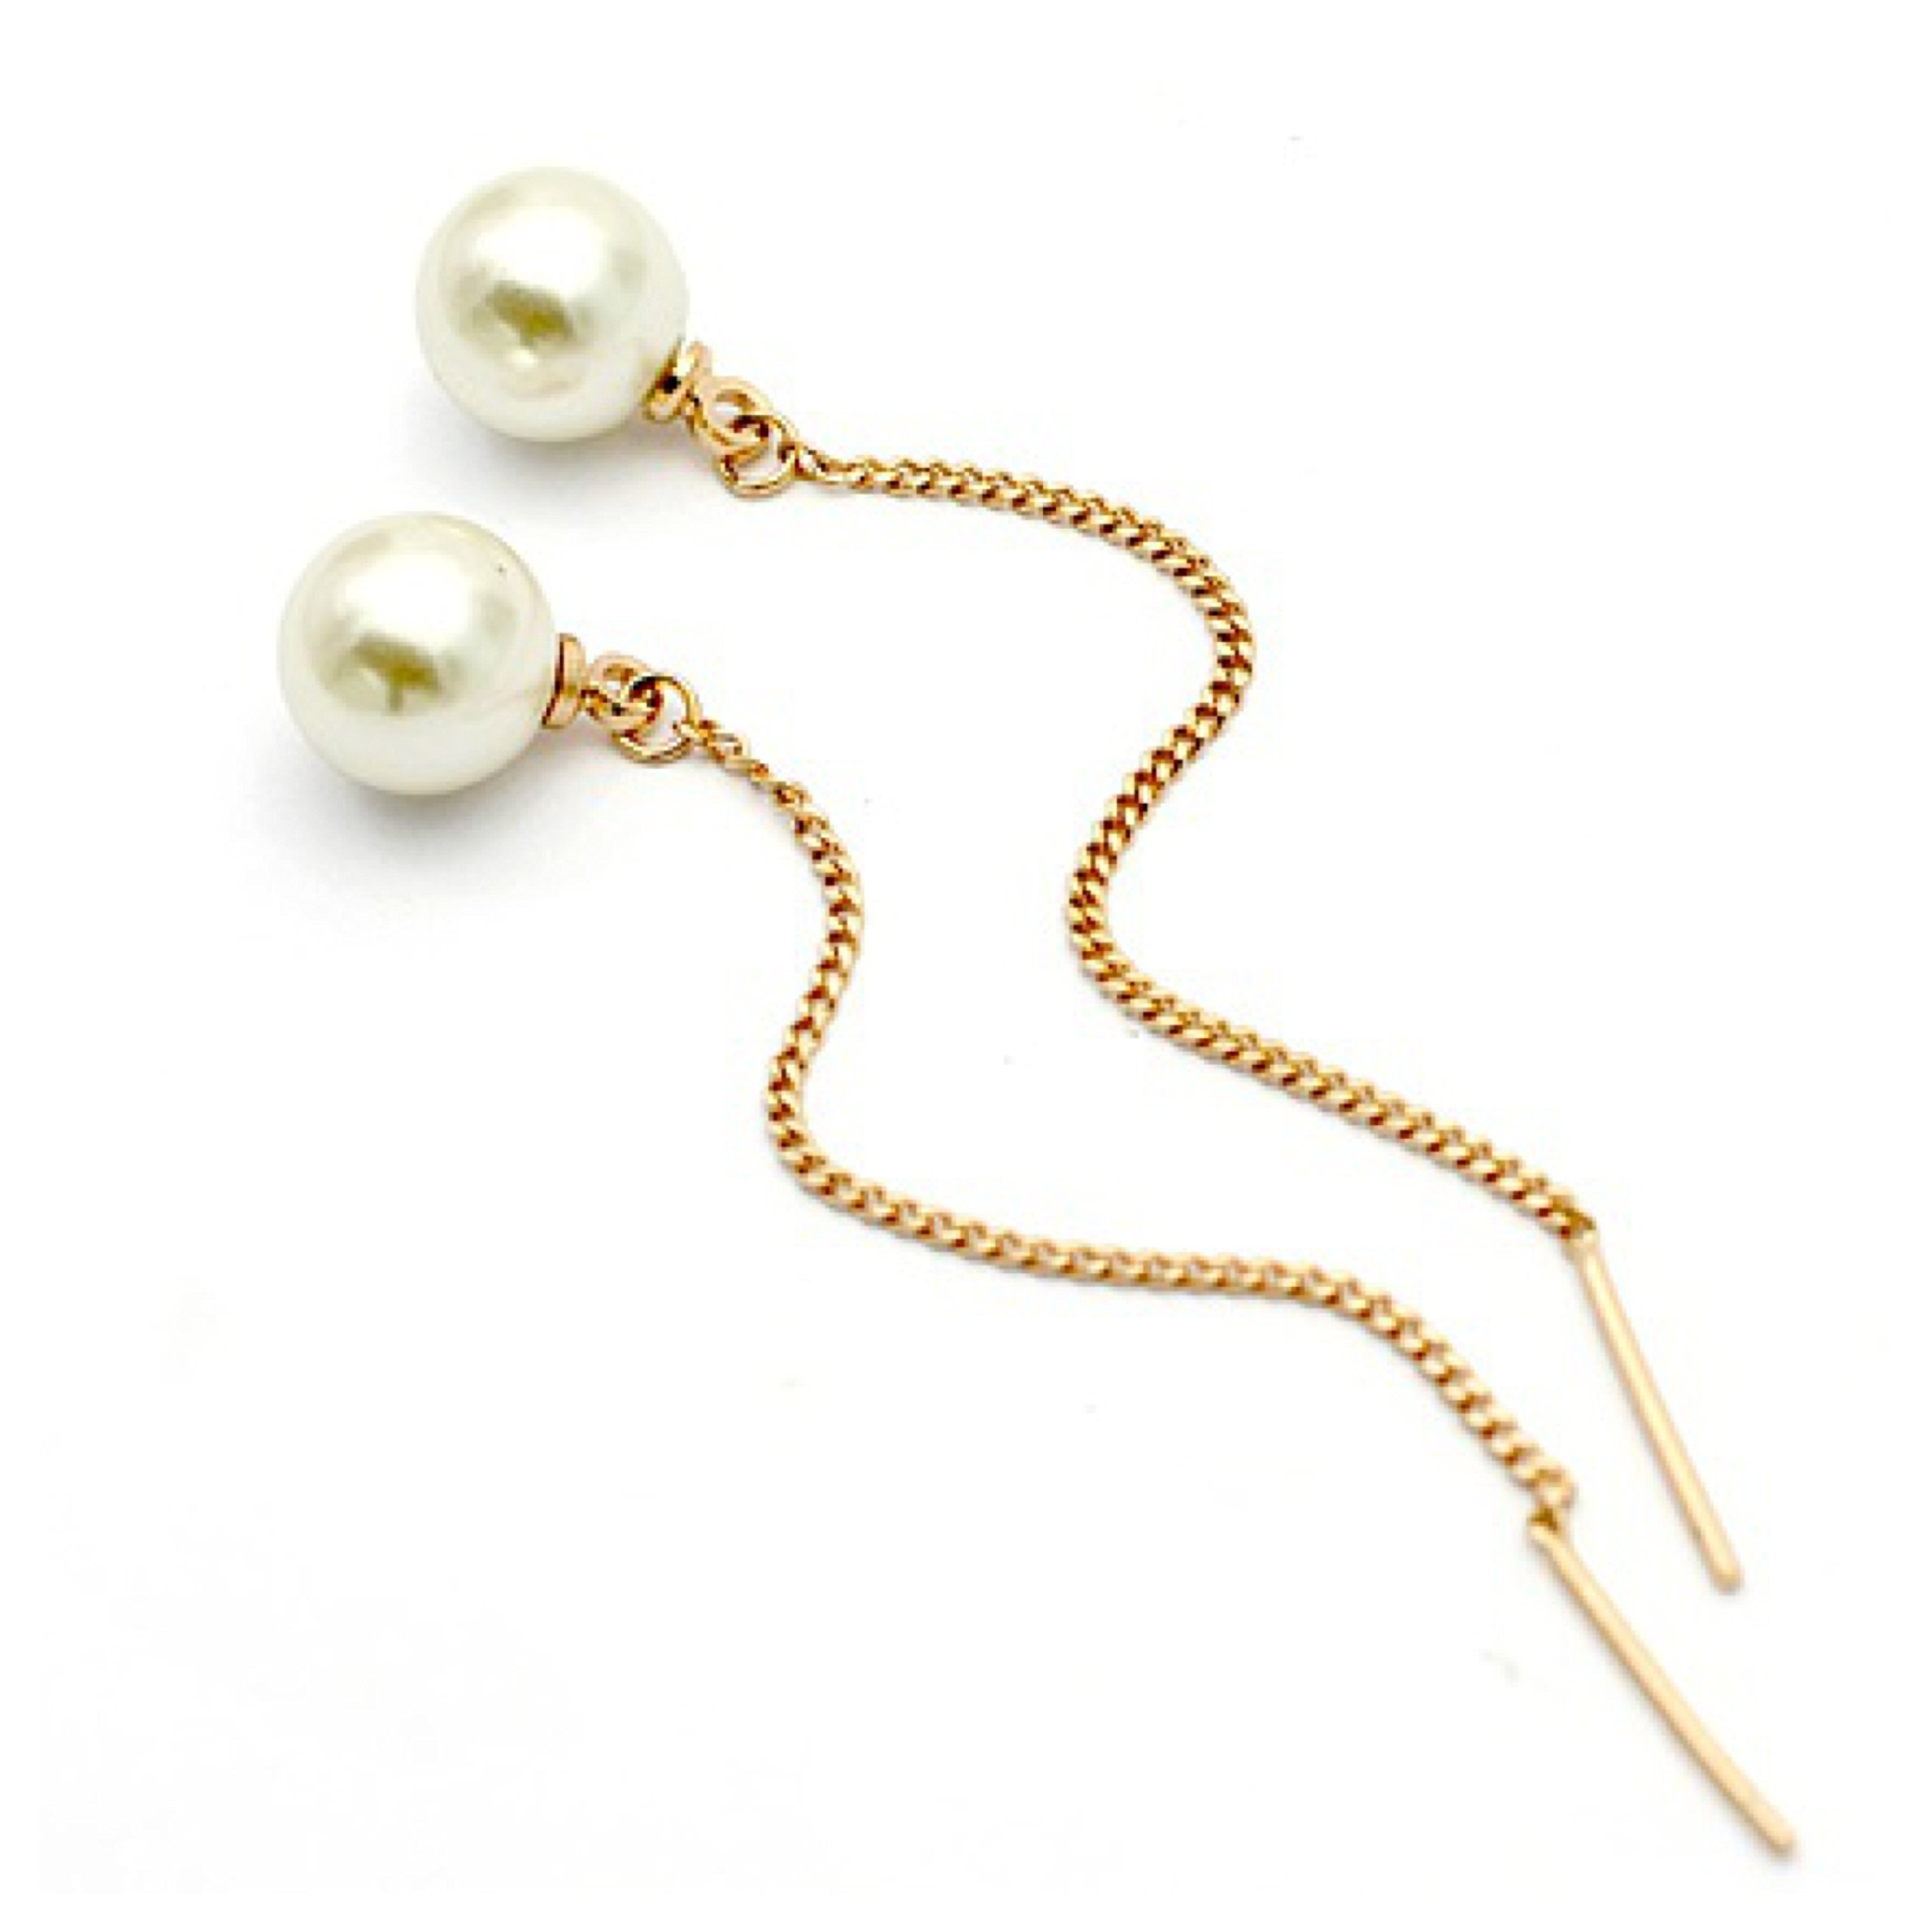 2018 MOTHERS DAY LOVE ROMANTIC GIFT 18K Gold Plated Long Gold White Simulated Pearl Drop Dangle Eco-Friendly Commfort Fit 69mm Stud Earrings for Women Ladies Girls (Gold)